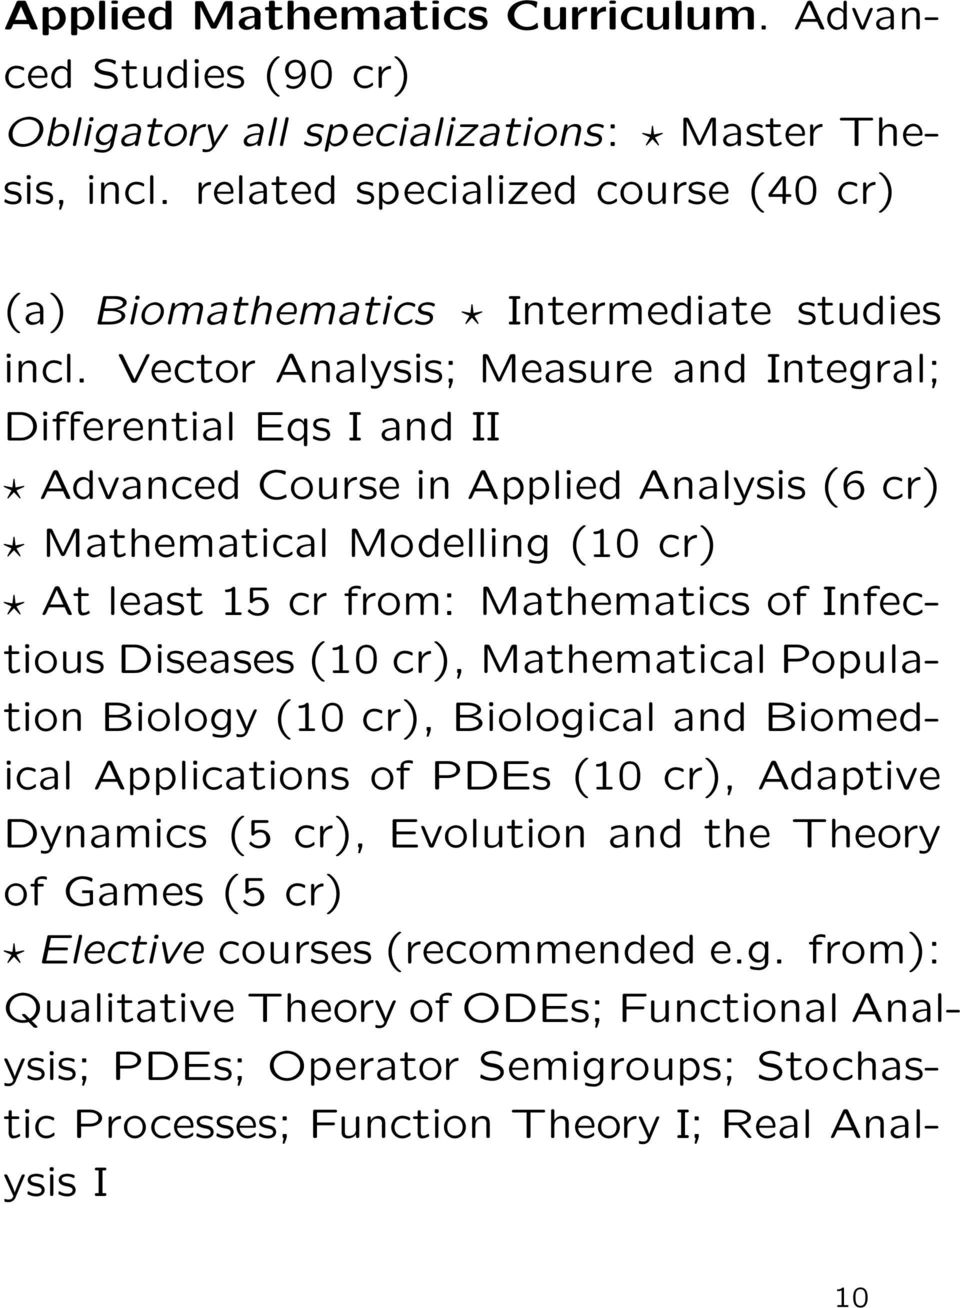 Vector Analysis; Measure and Integral; Differential Eqs I and II Advanced Course in Applied Analysis (6 cr) Mathematical Modelling (10 cr) At least 15 cr from: Mathematics of